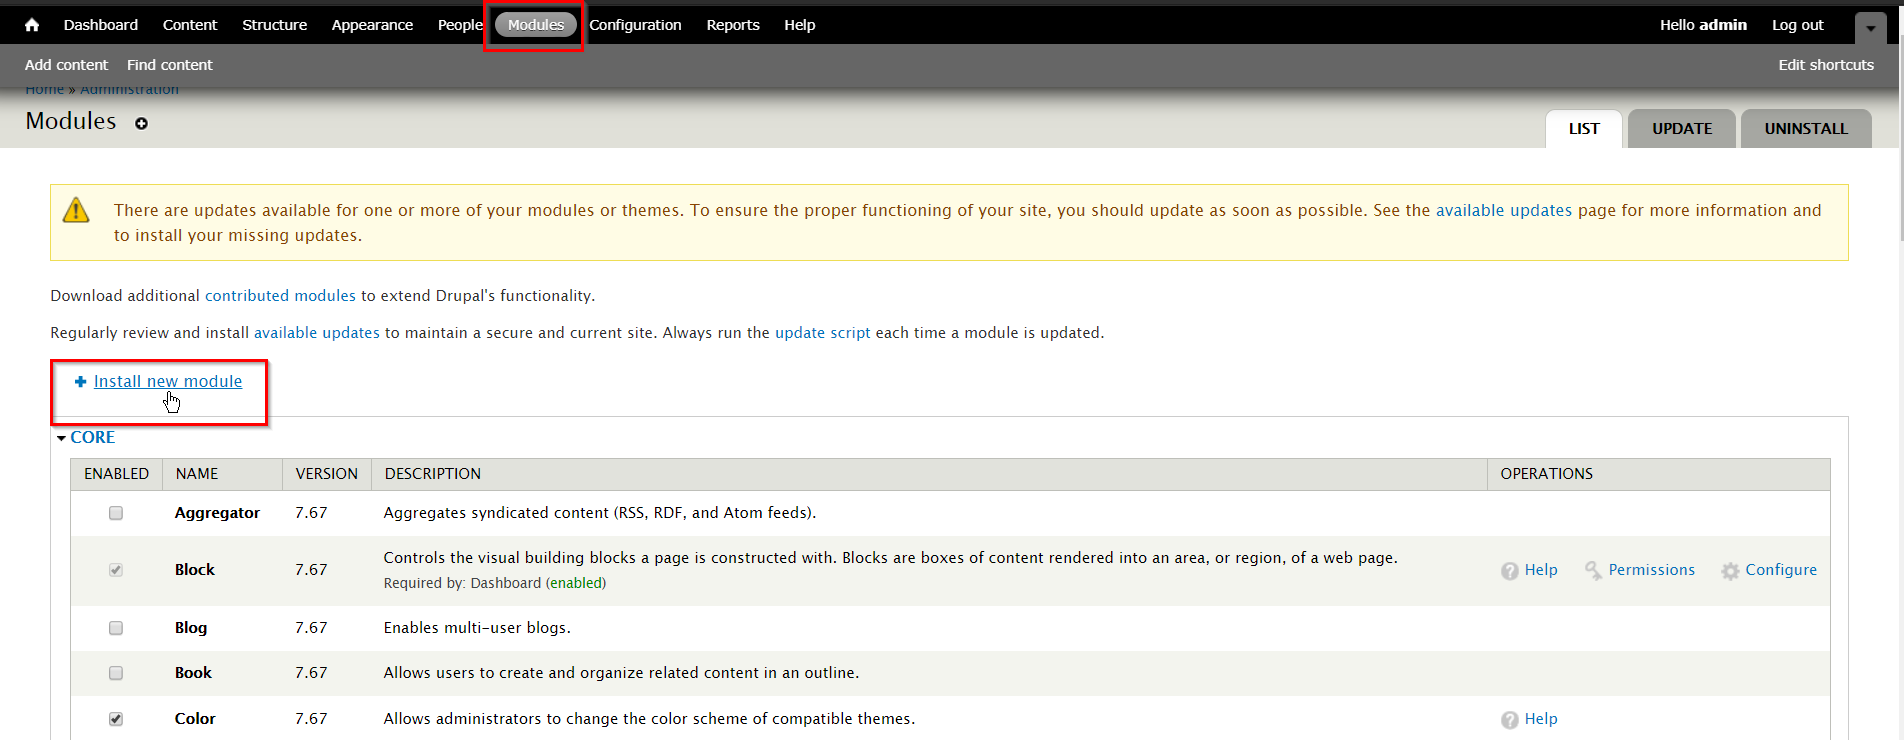 OTP_sso_Module page of Drupal 7 console